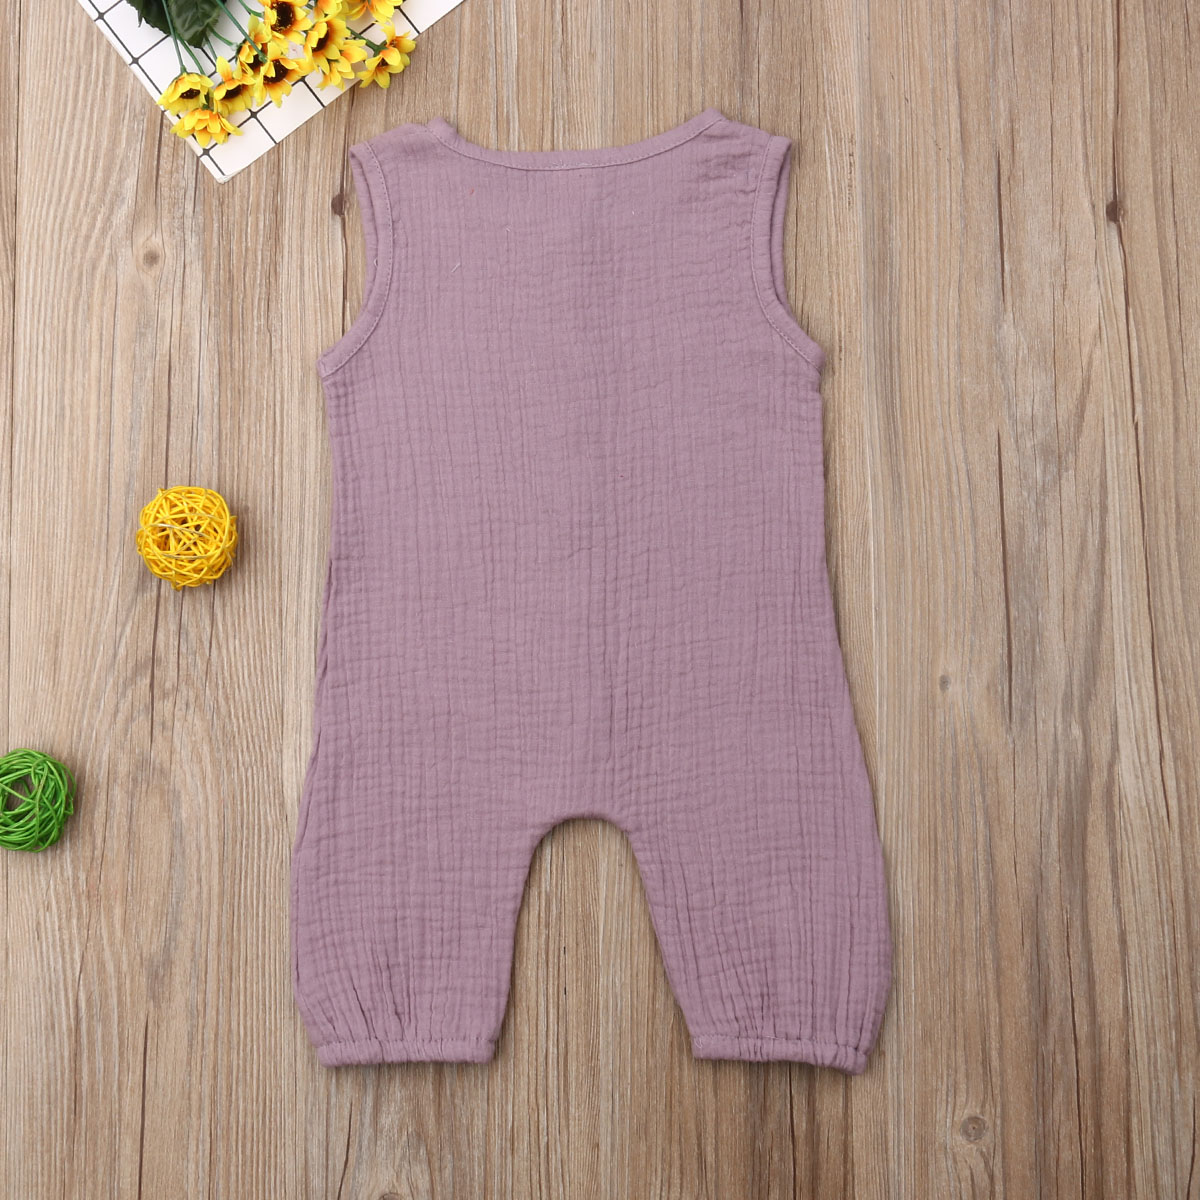 TingM Toddler Newborn Infant Unisex Baby Boy Girl Button Solid Hooded Romper Bodysuit One Piece Jumpsuit Outfits Clothes